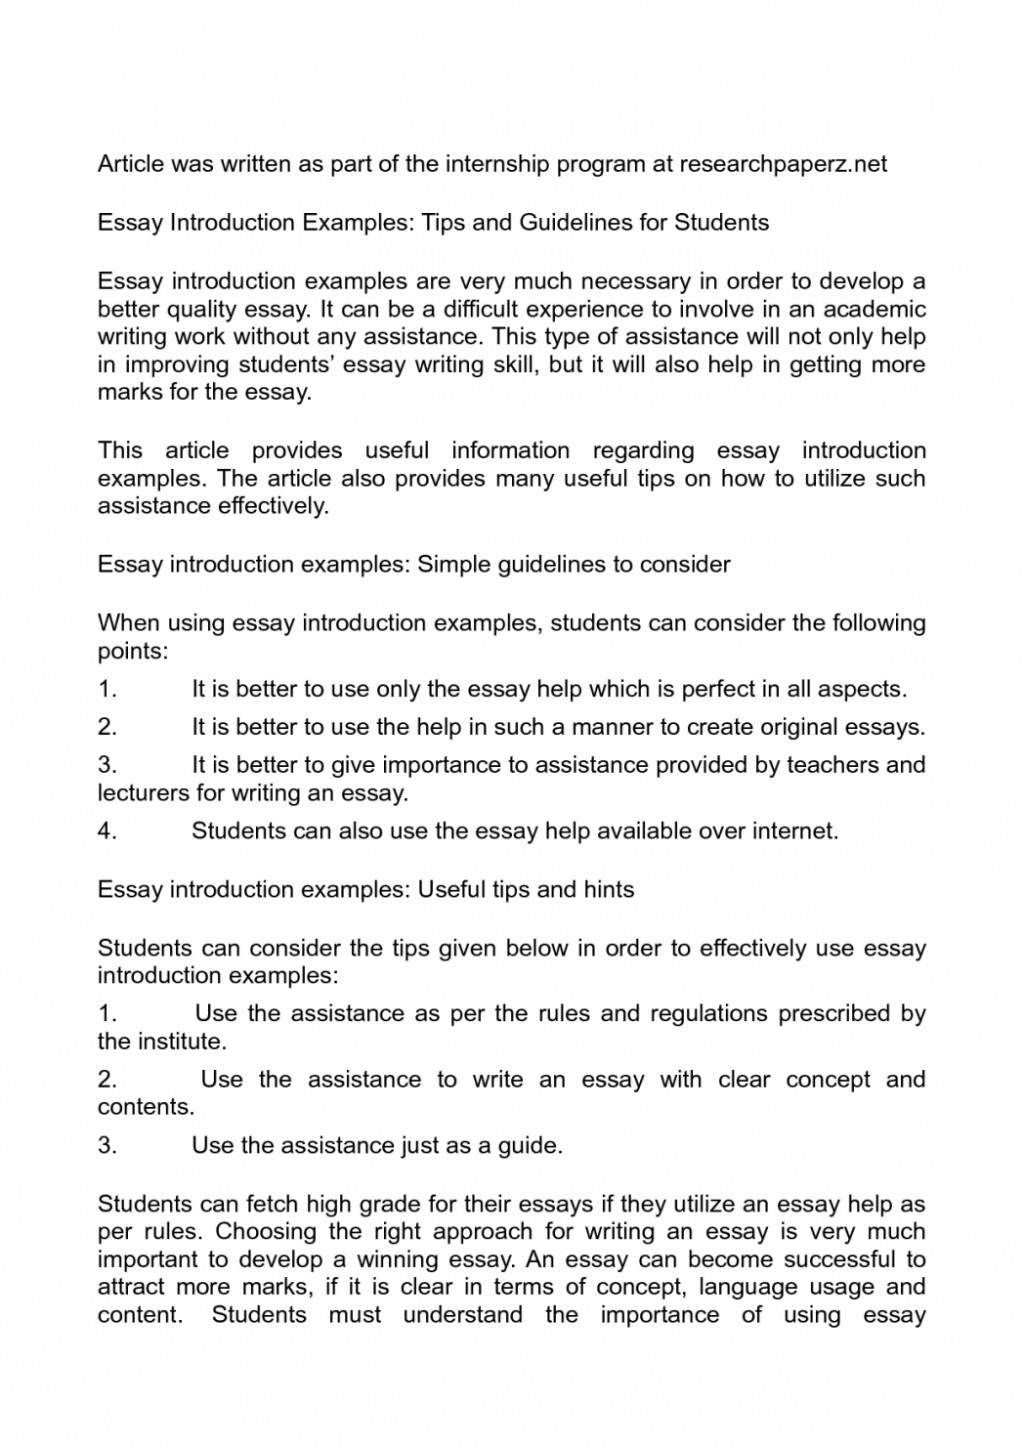 007 Essay Example How To Start Introduction On Good Paragraph An Eyx5t Write University For In Ielts Academic Analytical Argumentative Hook Examples Great Intro 1048x1482 Awesome A Paper College Biography About Yourself Large